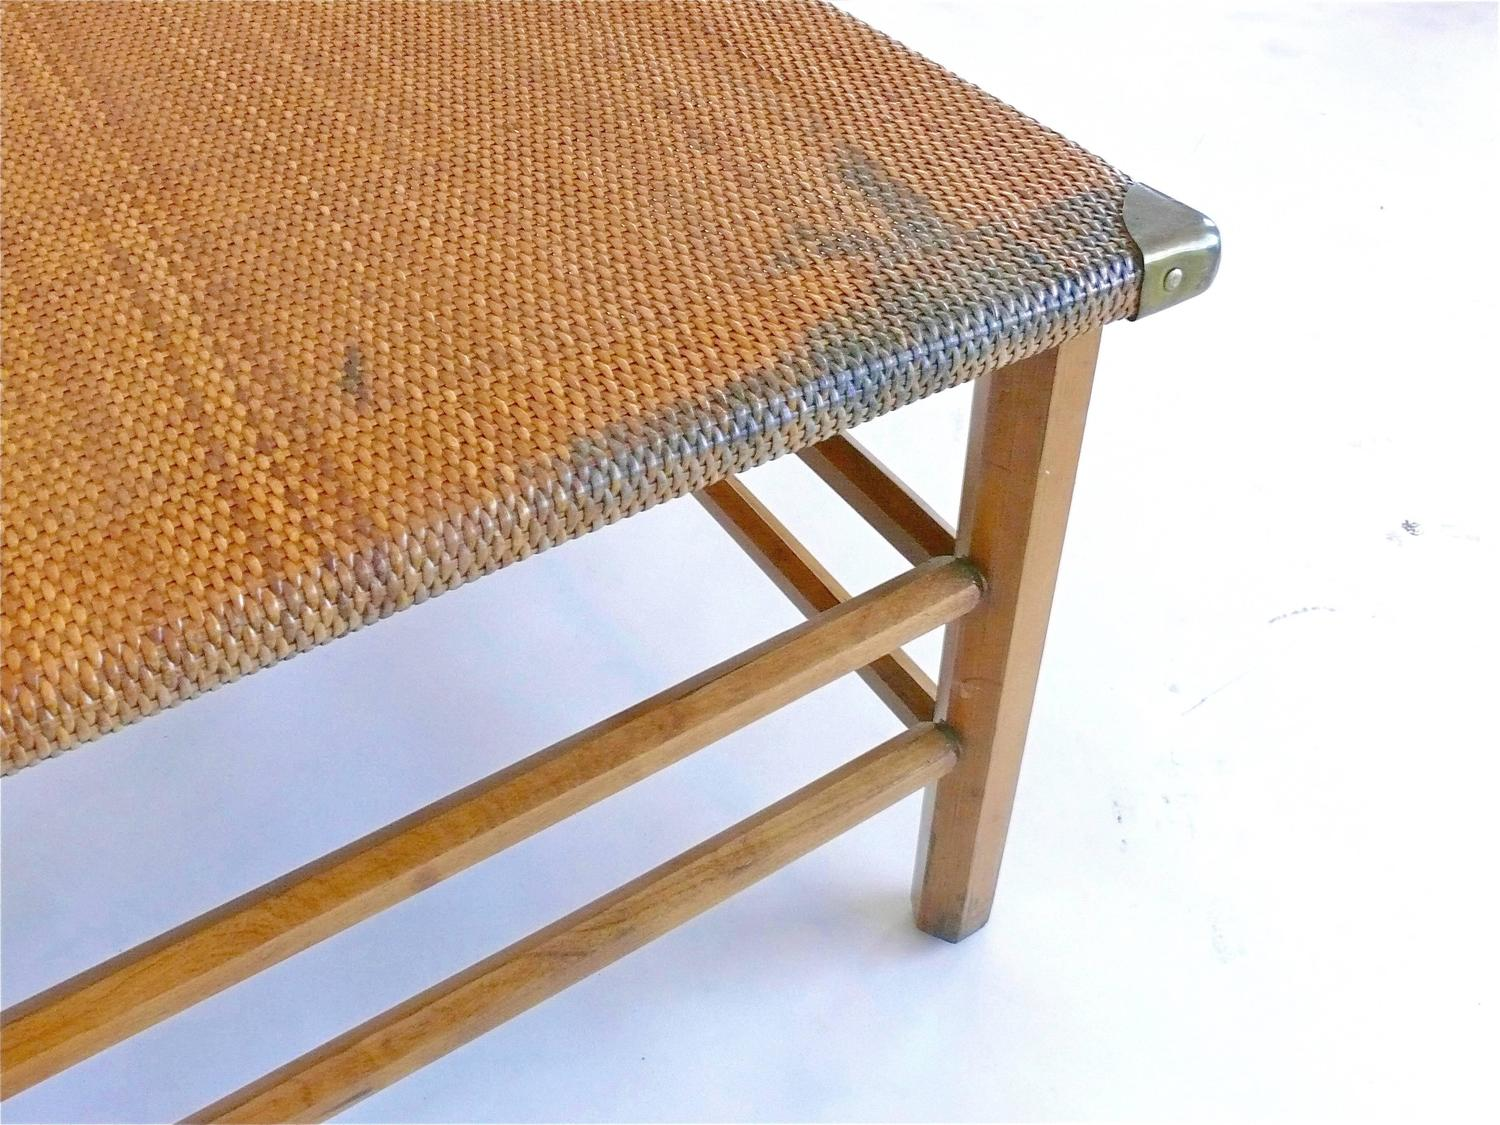 Wicker chaise longue for sale at 1stdibs for Chaise longue rattan